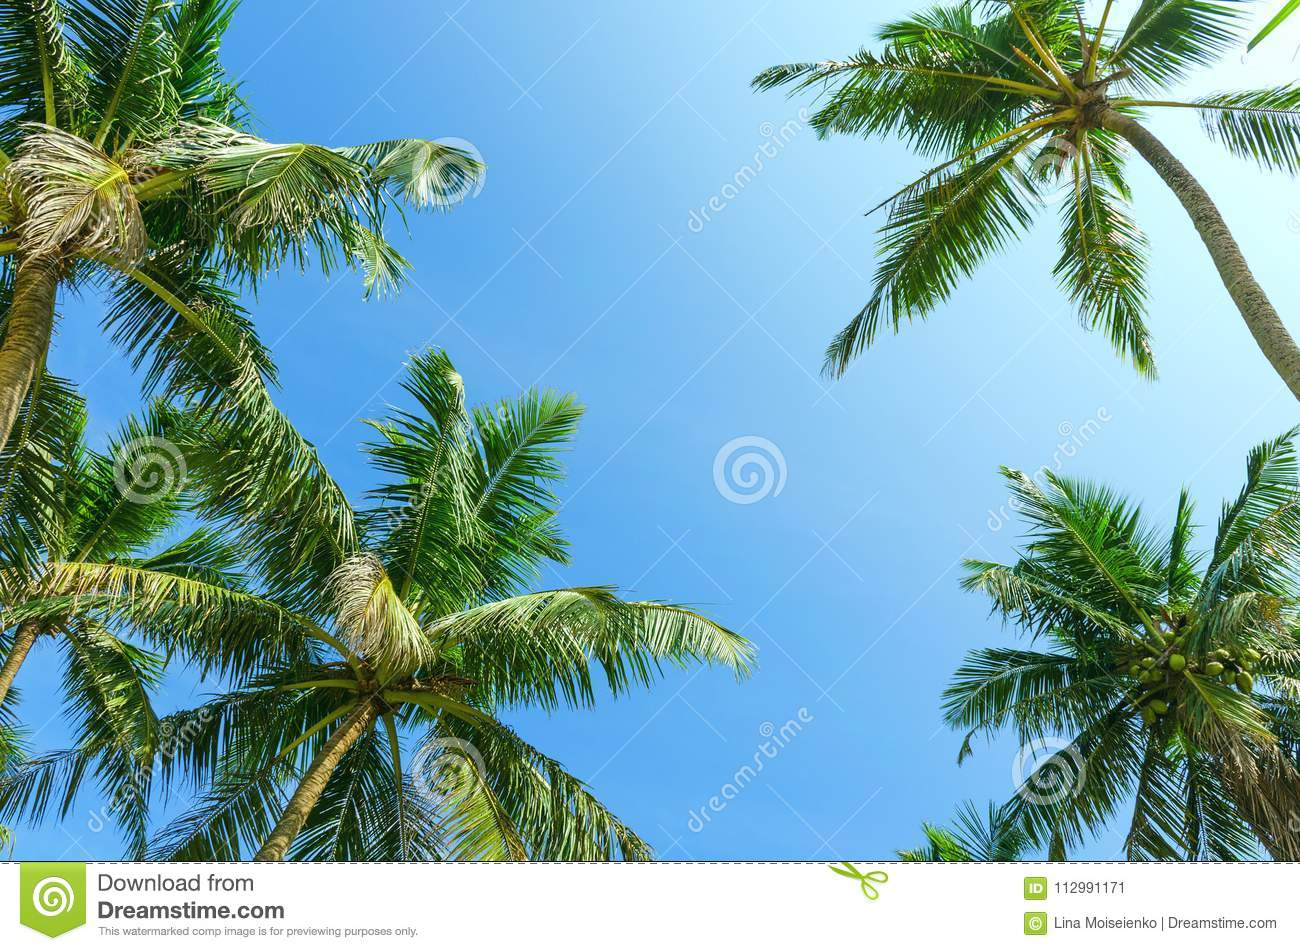 Summer clear blue sky with tropical coconut palm trees.